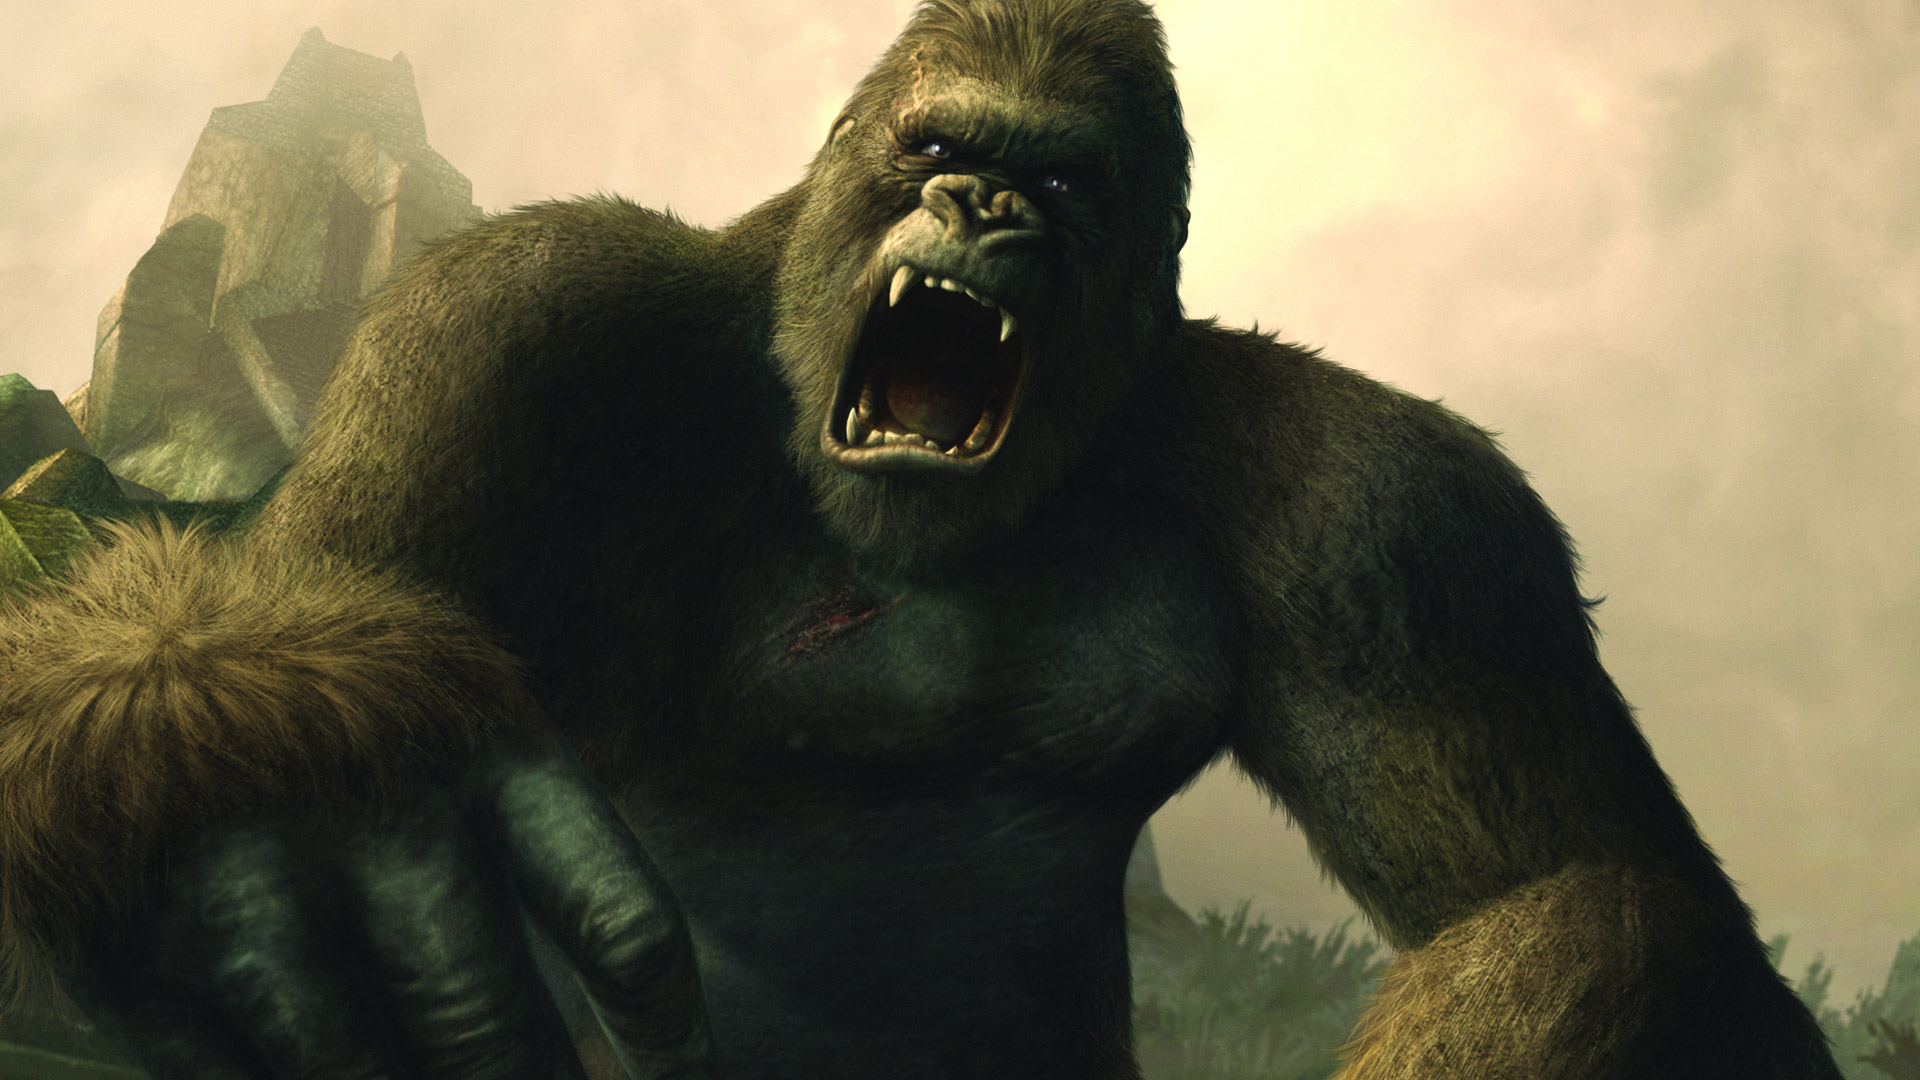 Free Peter Jackson's King Kong: The Official Game of the Movie Wallpaper in 1920x1080